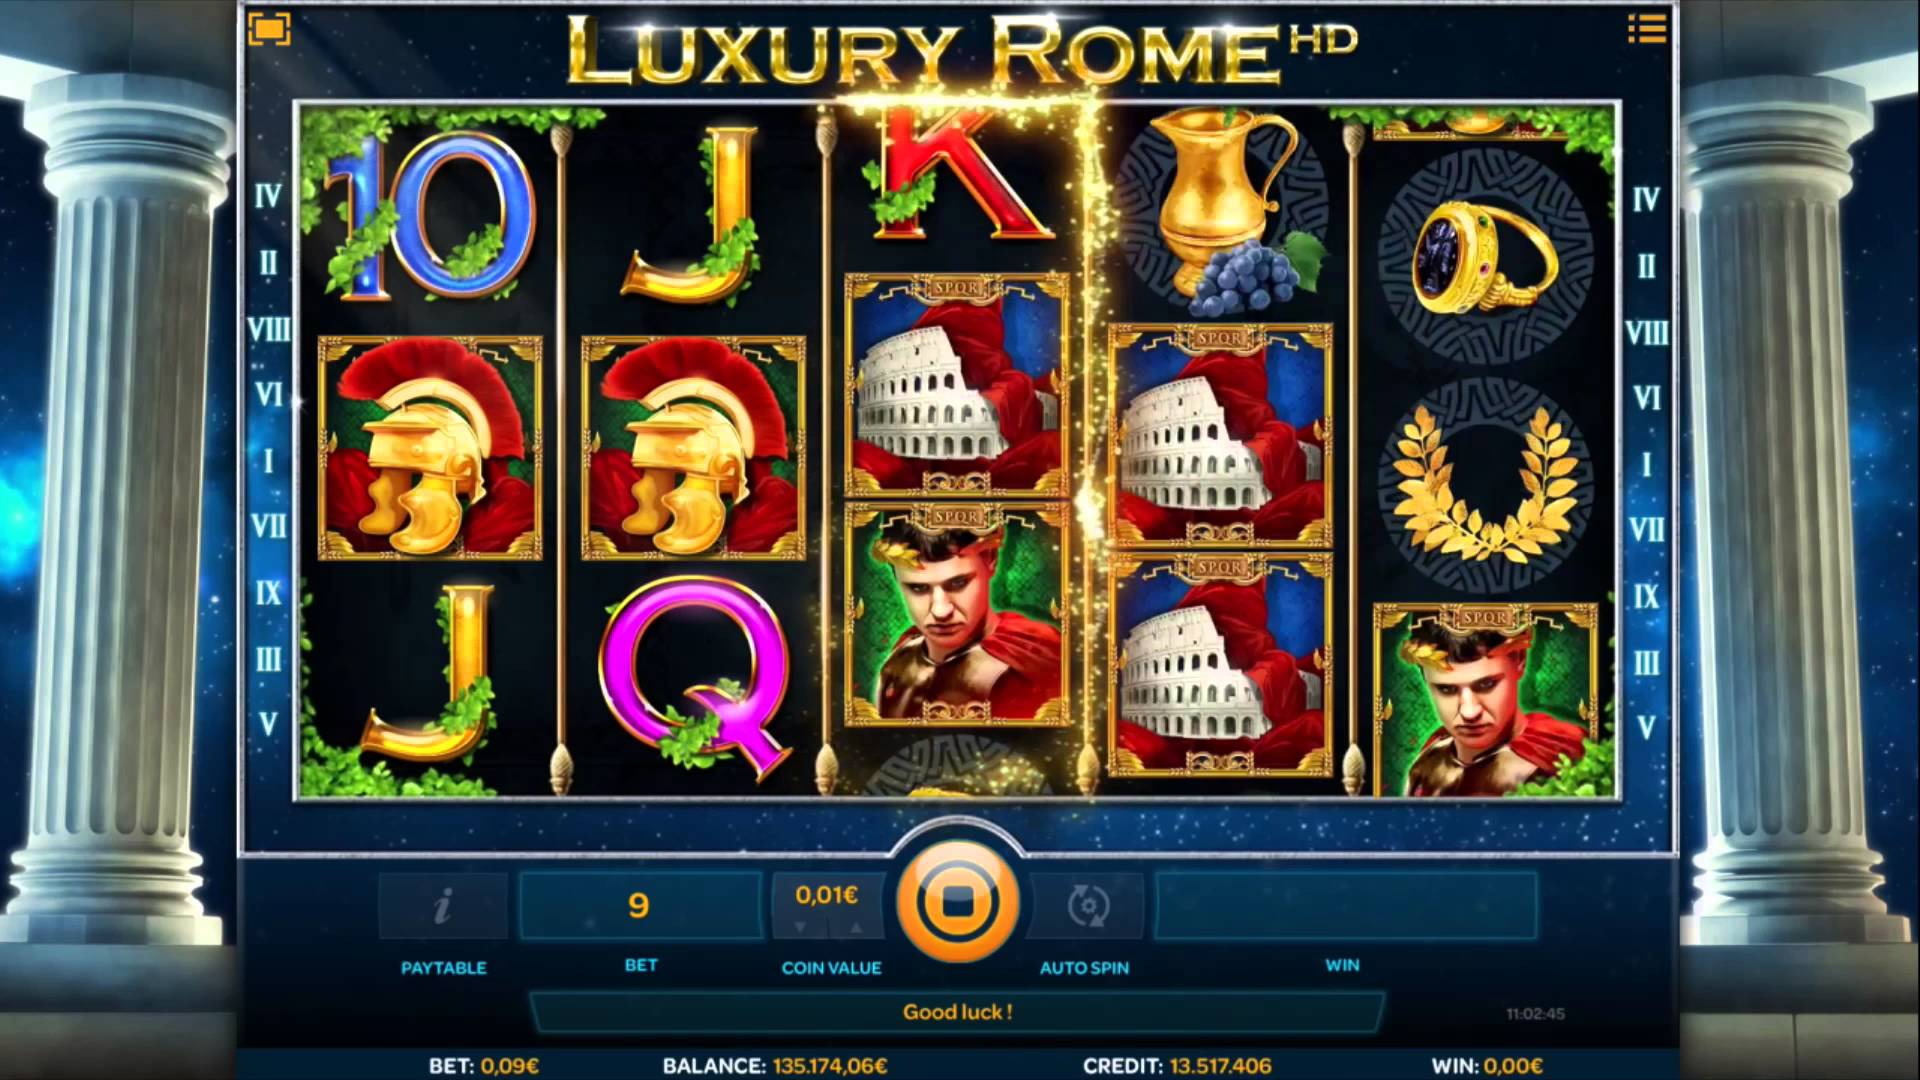 Luxury Rome HD game lobby